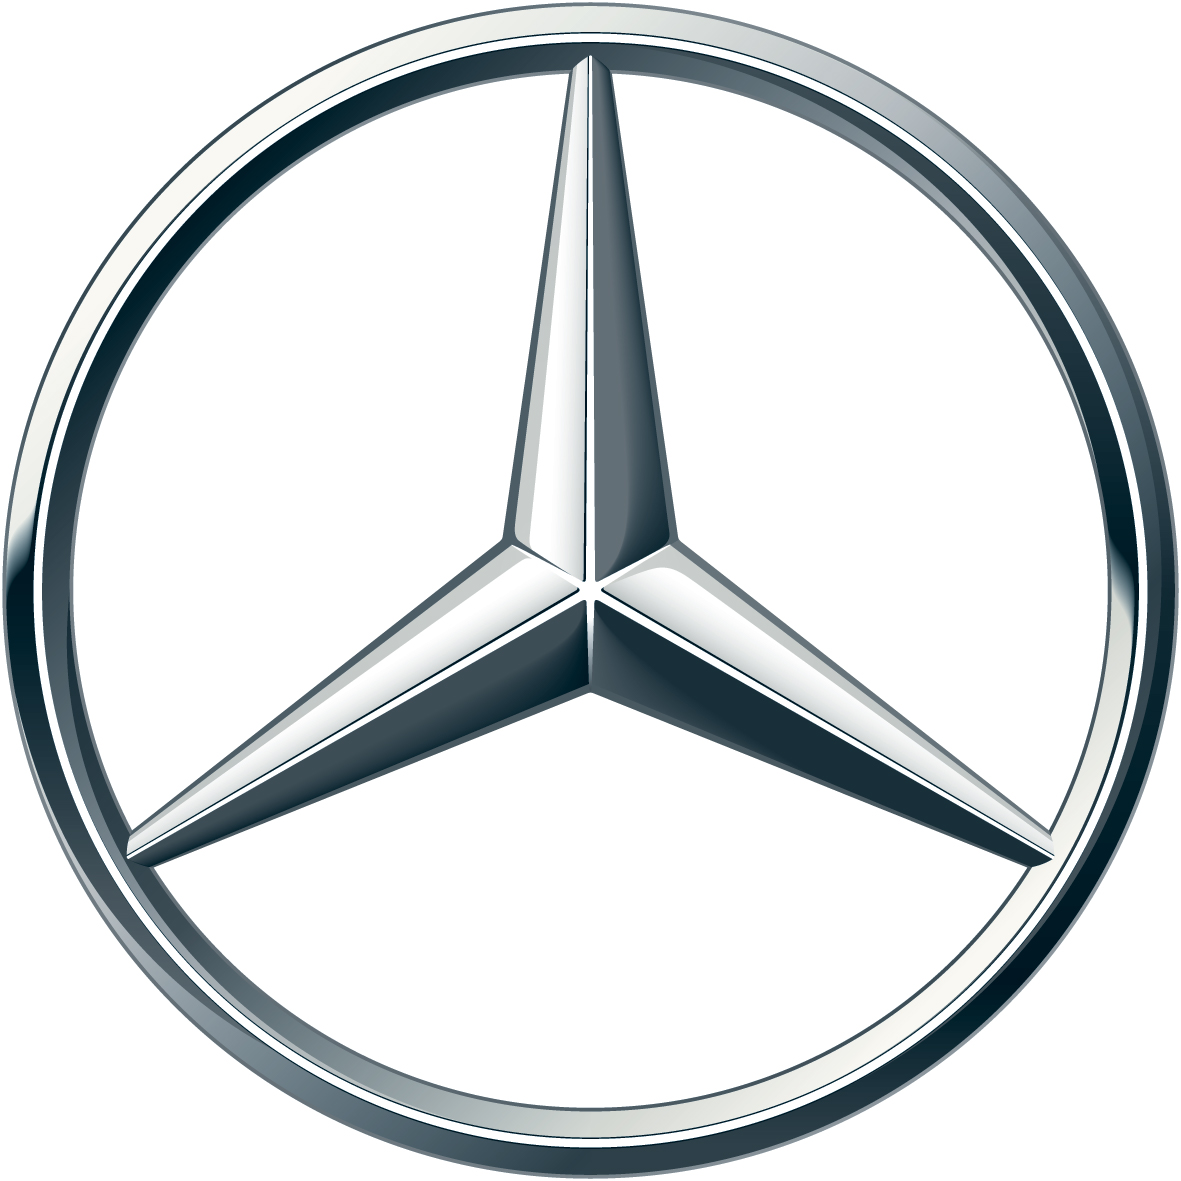 Mercedes-Benz Canada partners with Kruger Products to deliver essential supplies to front-line healthcare professionals